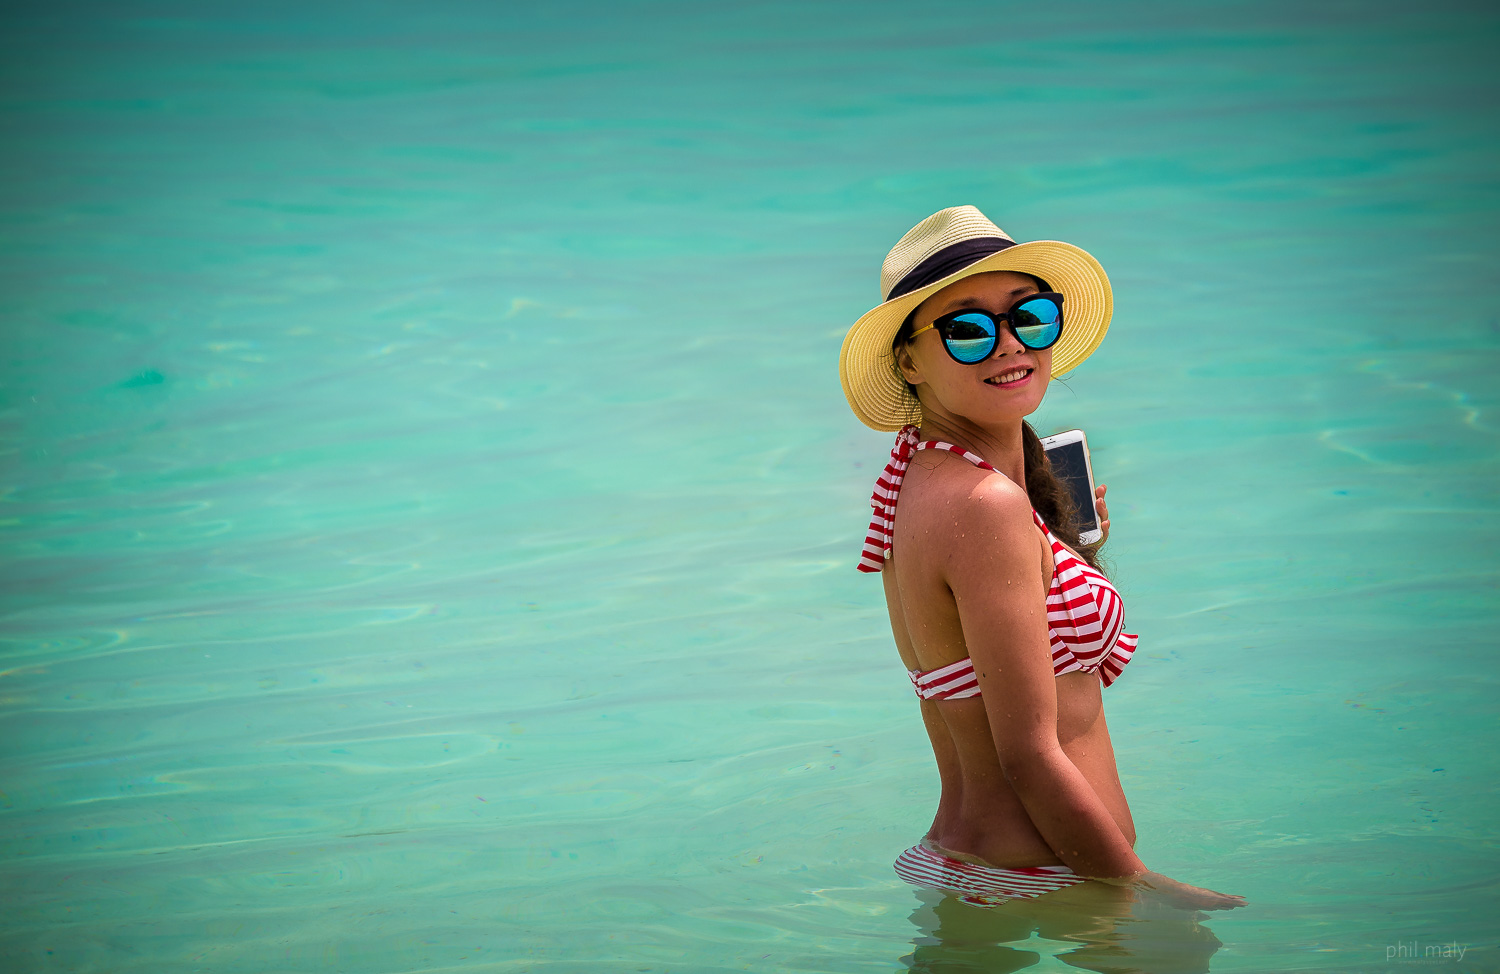 Portrait of a girl with a red stripped swimsuit in the water with her iPhone